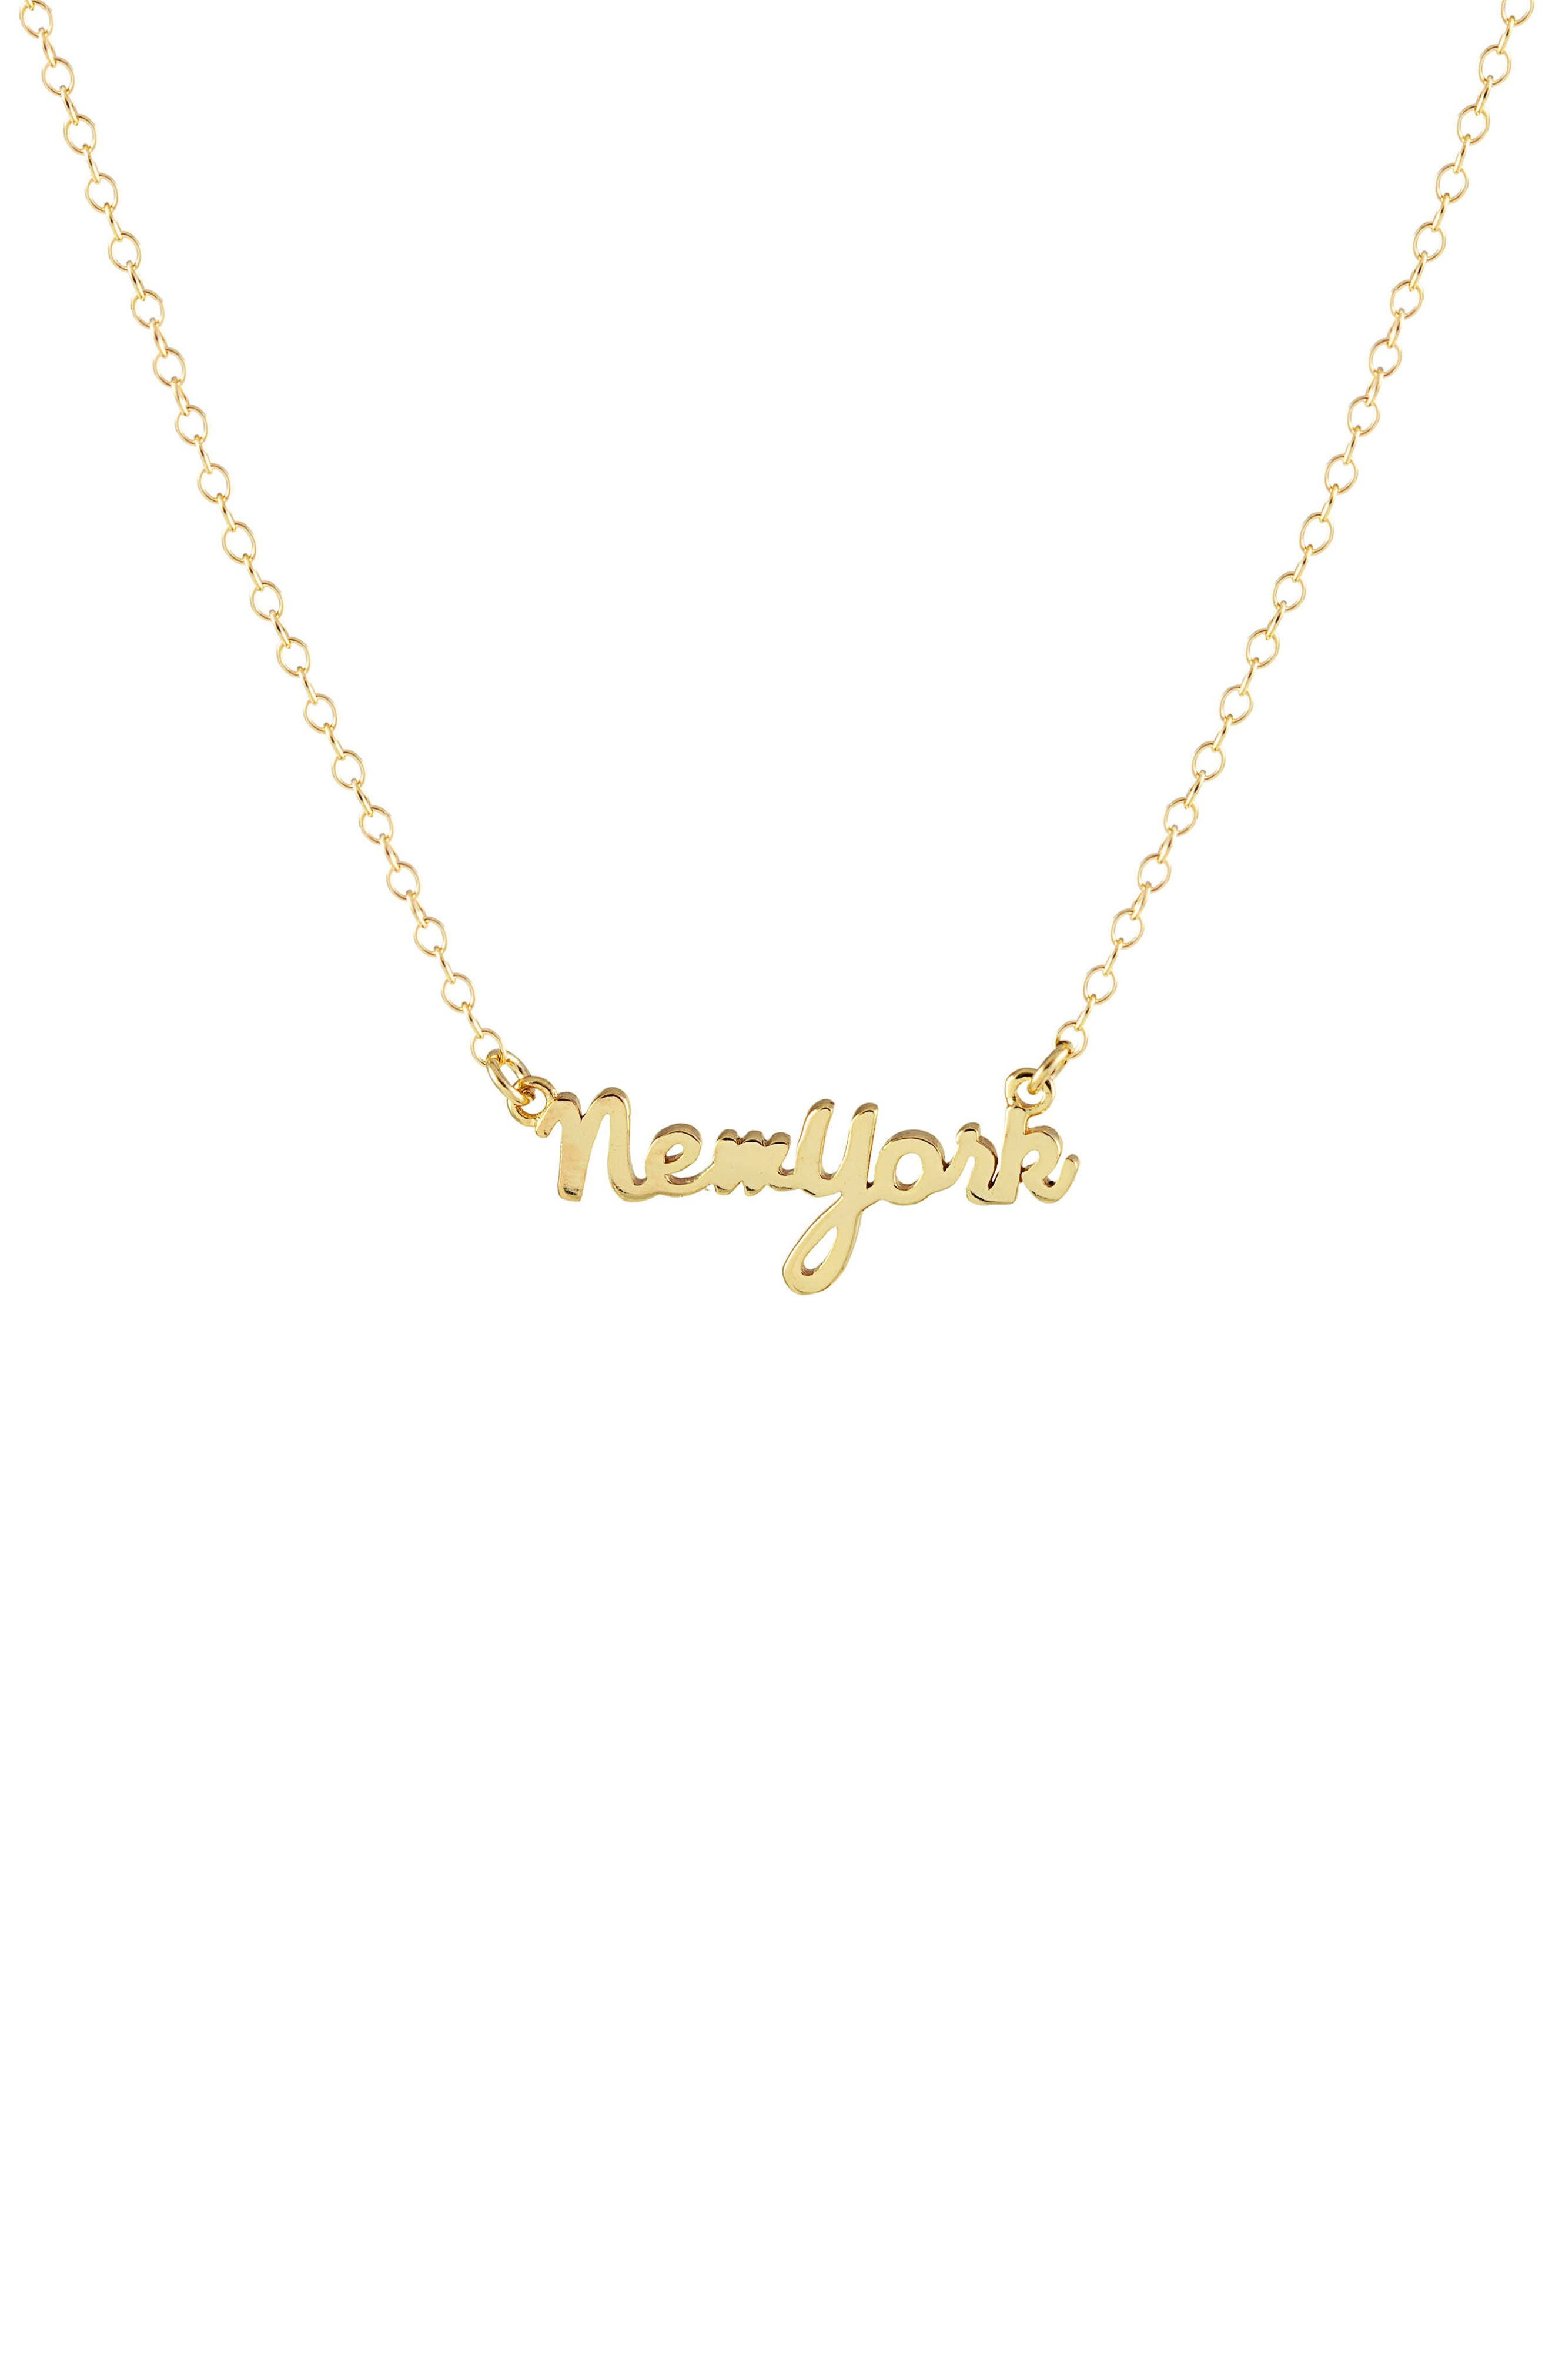 Solid State Charm Necklace,                         Main,                         color, New York - Gold